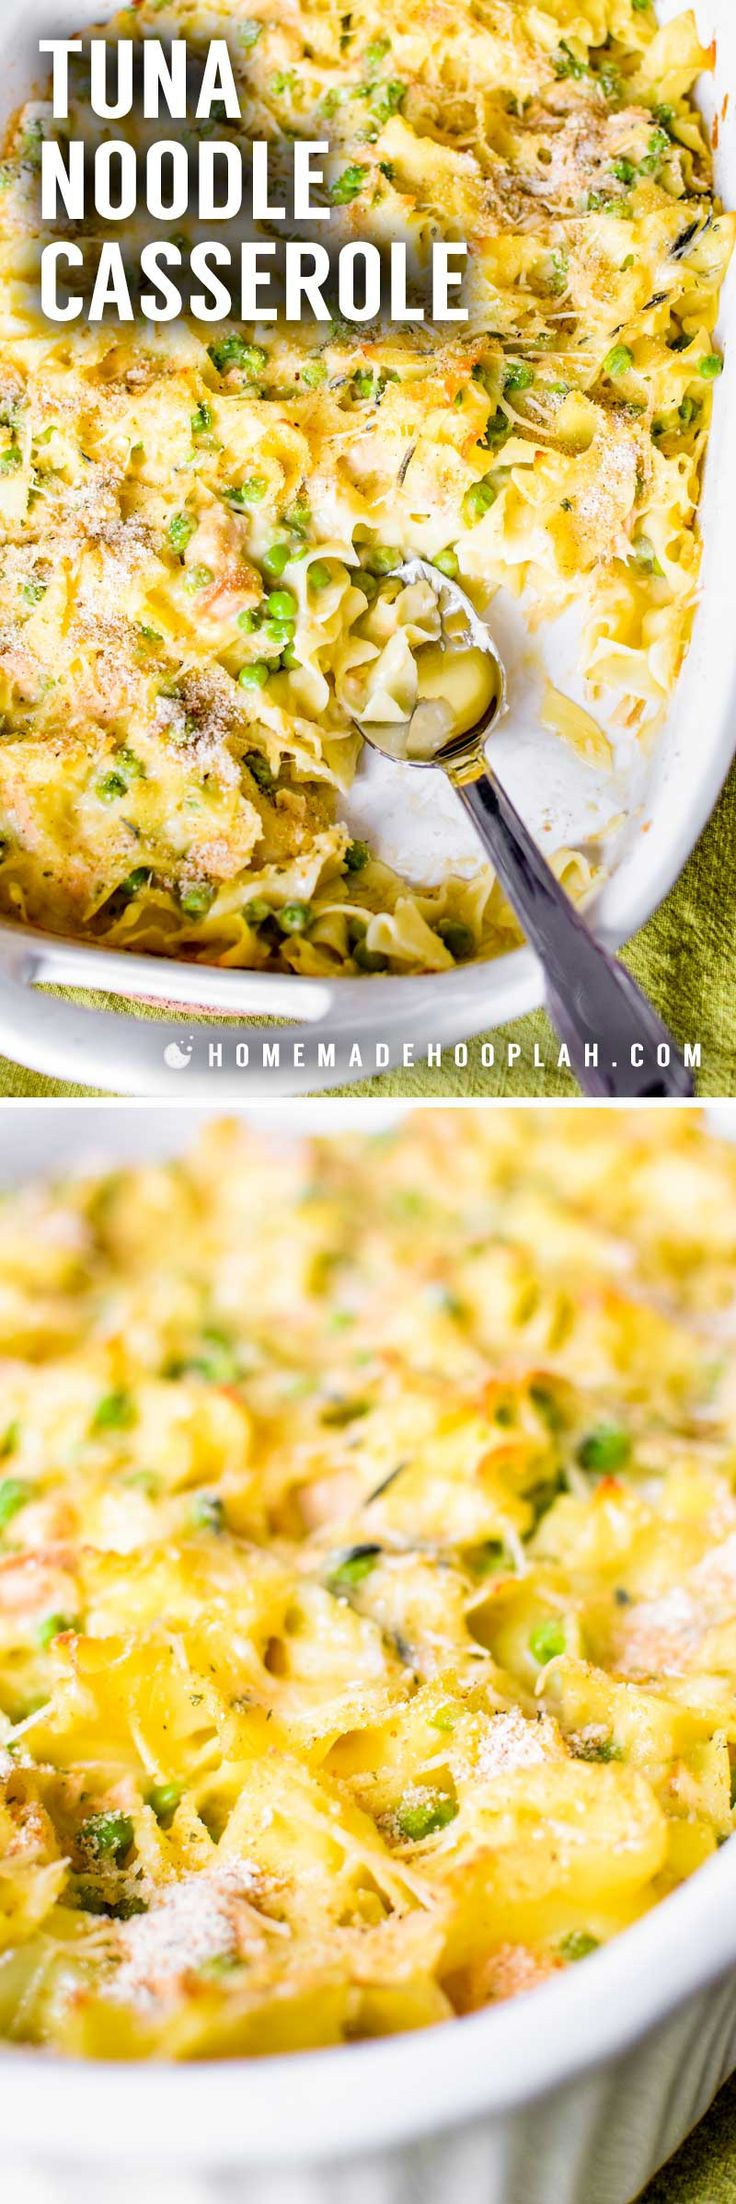 Tuna Noodle Casserole! This is a family dinner classic! Creamy and mixed cheese sauce baked with tuna, veggies, and soft egg noodles, then topped with seasoned panko breadcrumbs. | HomemadeHooplah.com